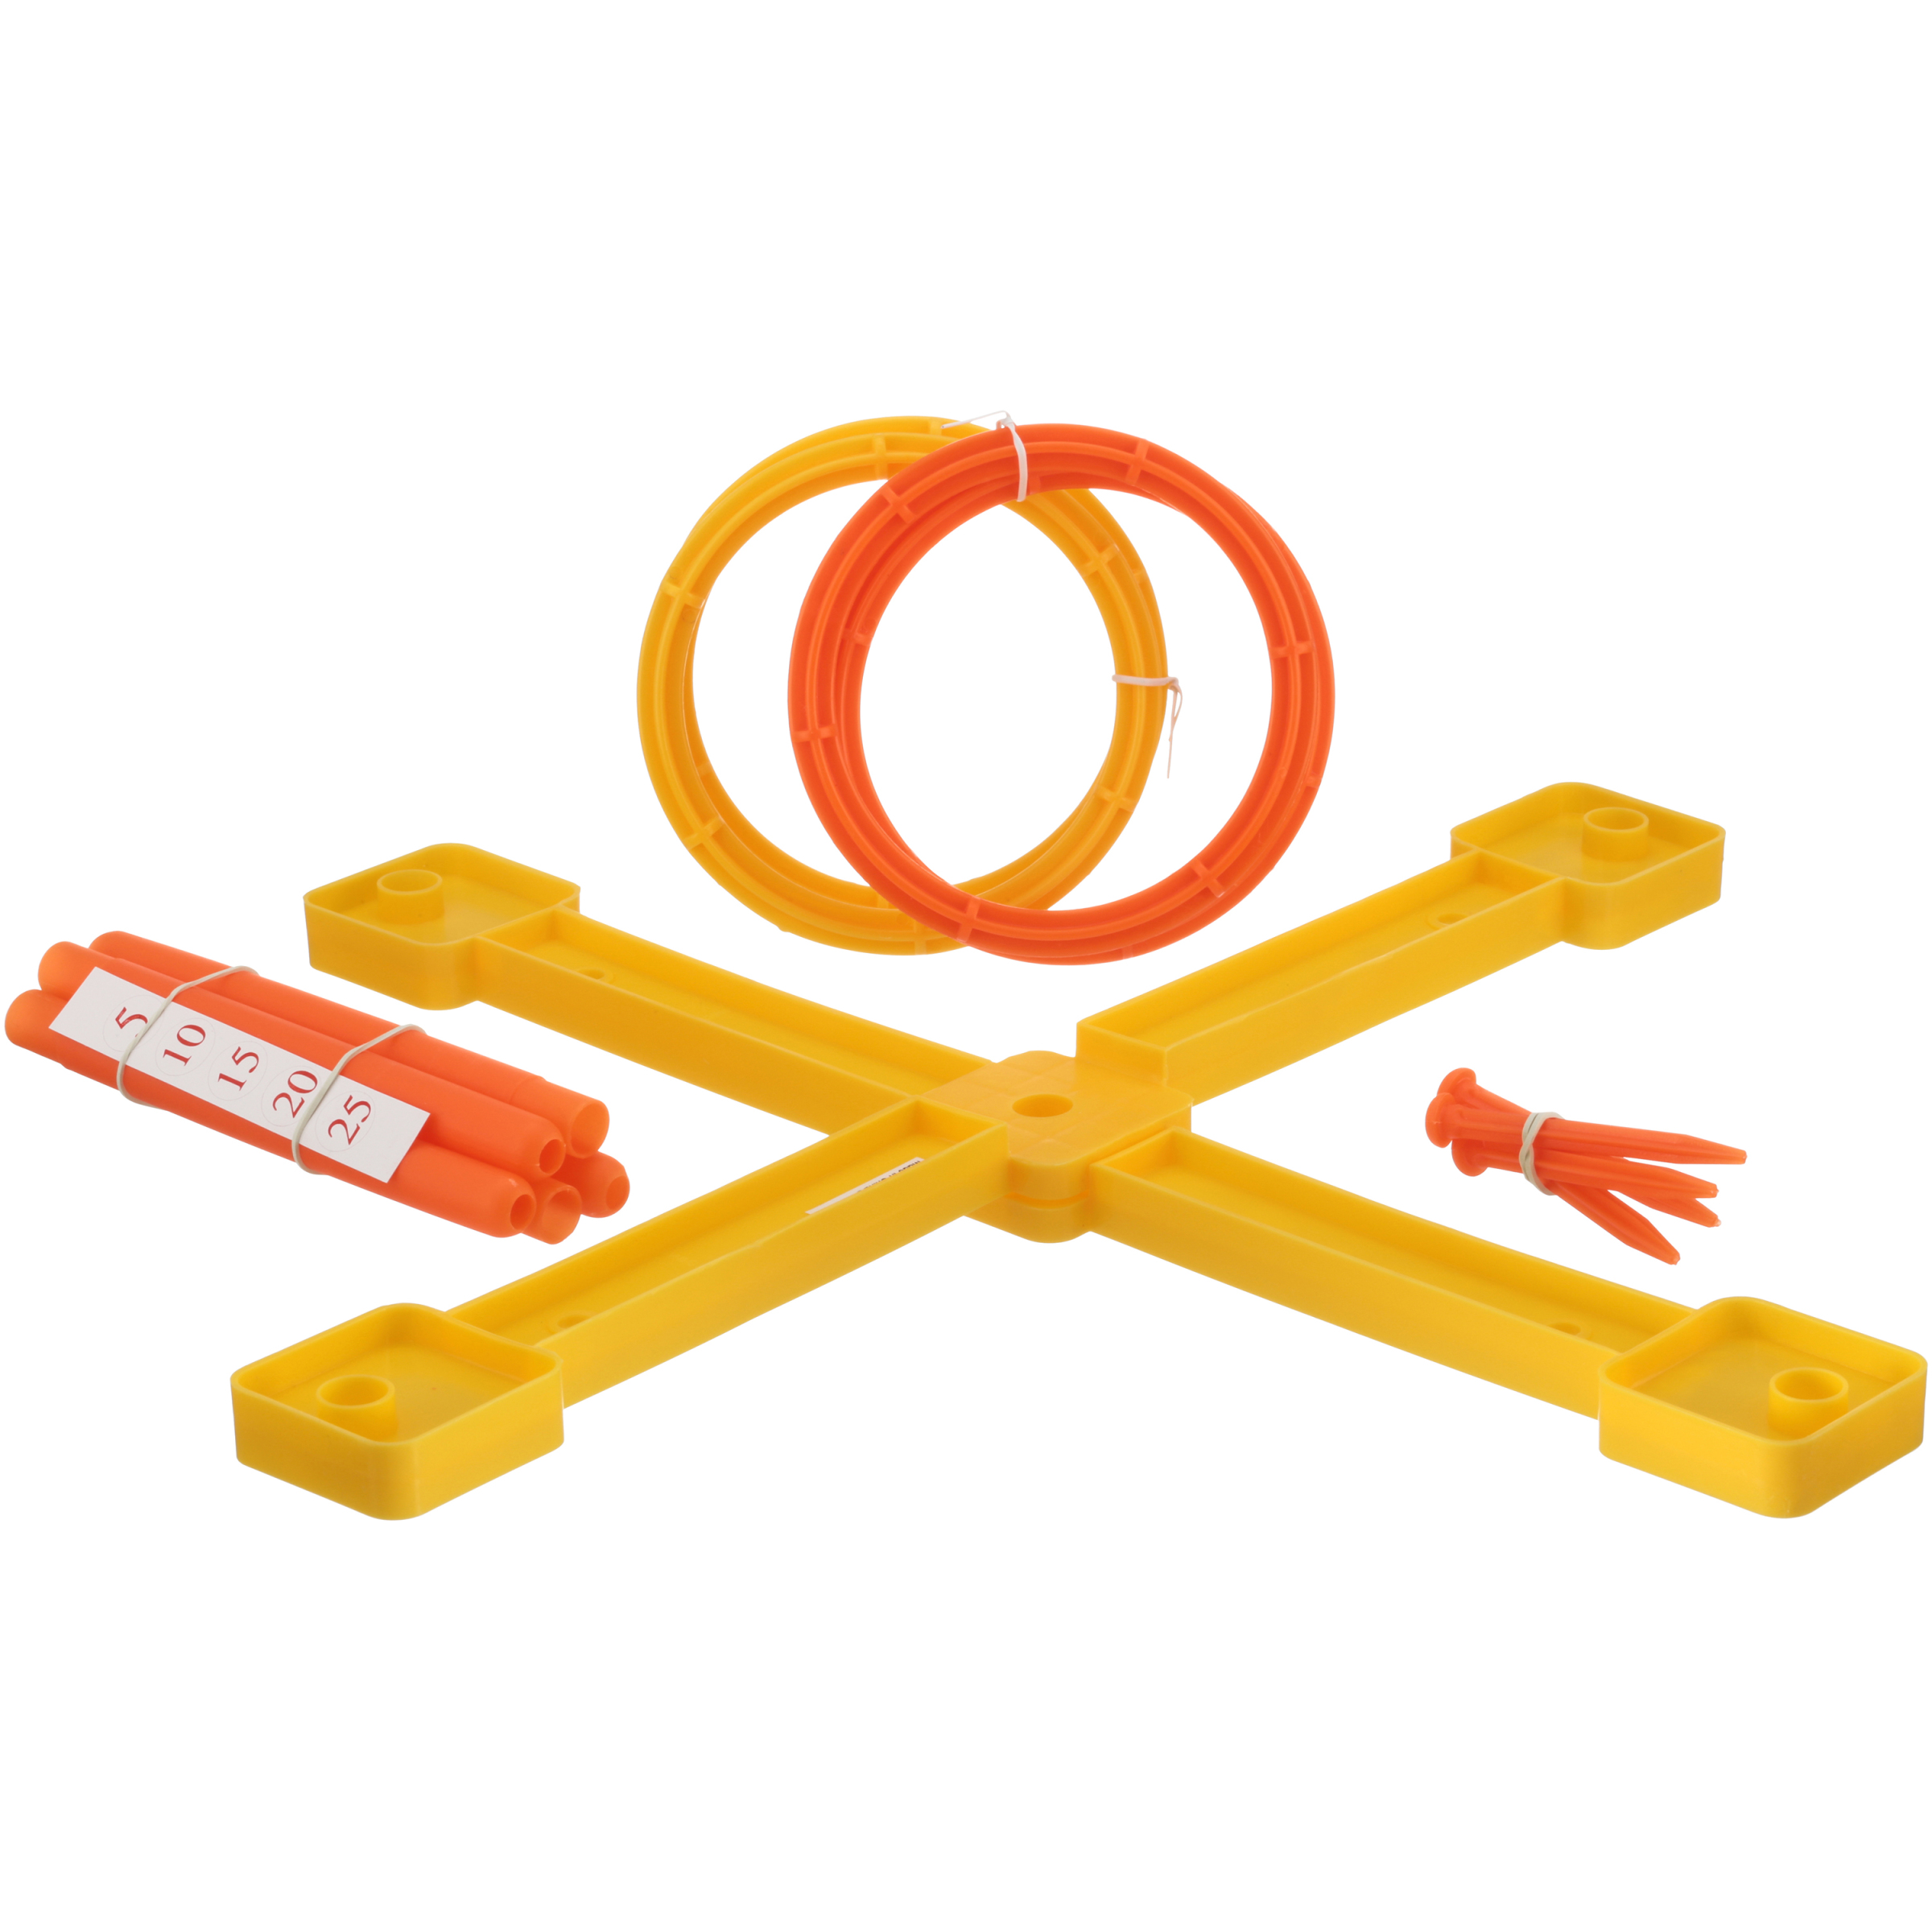 Franklin® Ring Toss Game Pack